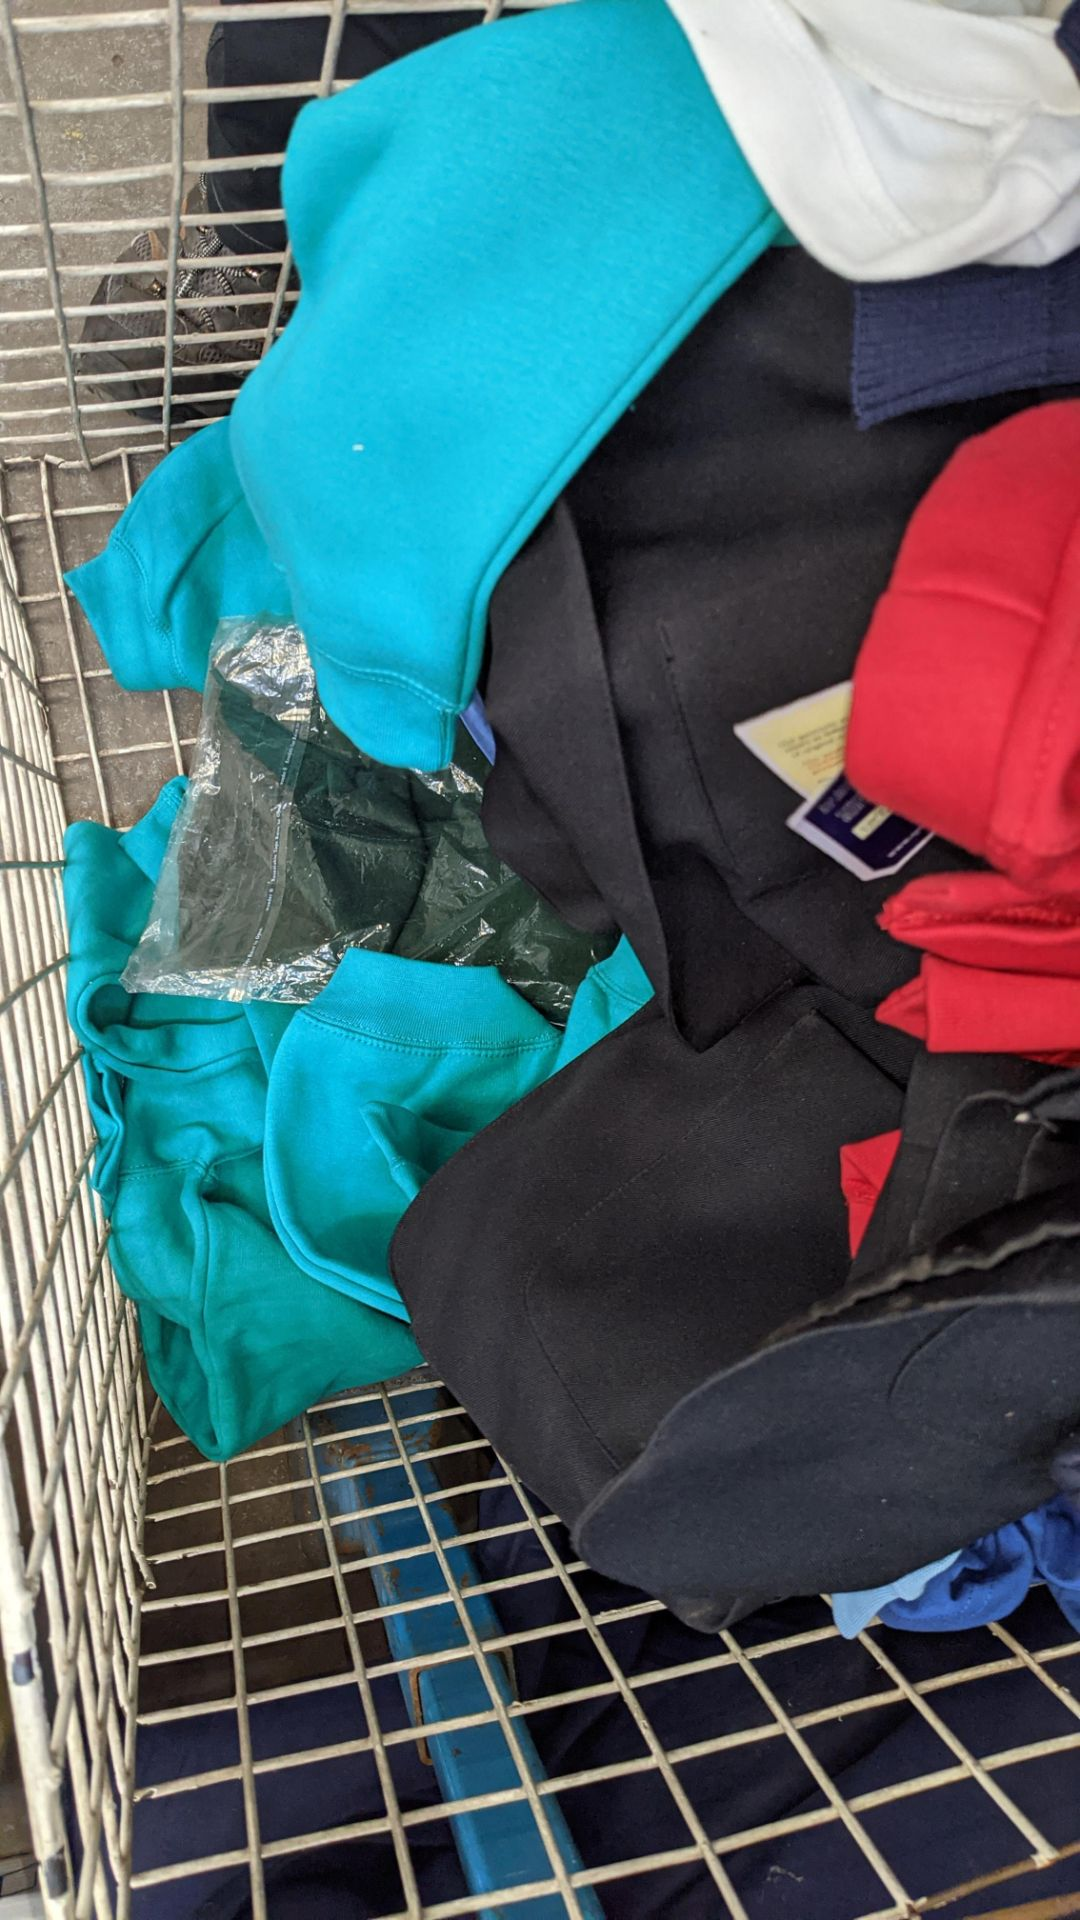 The contents of a cage of children's clothing, sweatshirts, t-shirts & more - Image 6 of 7